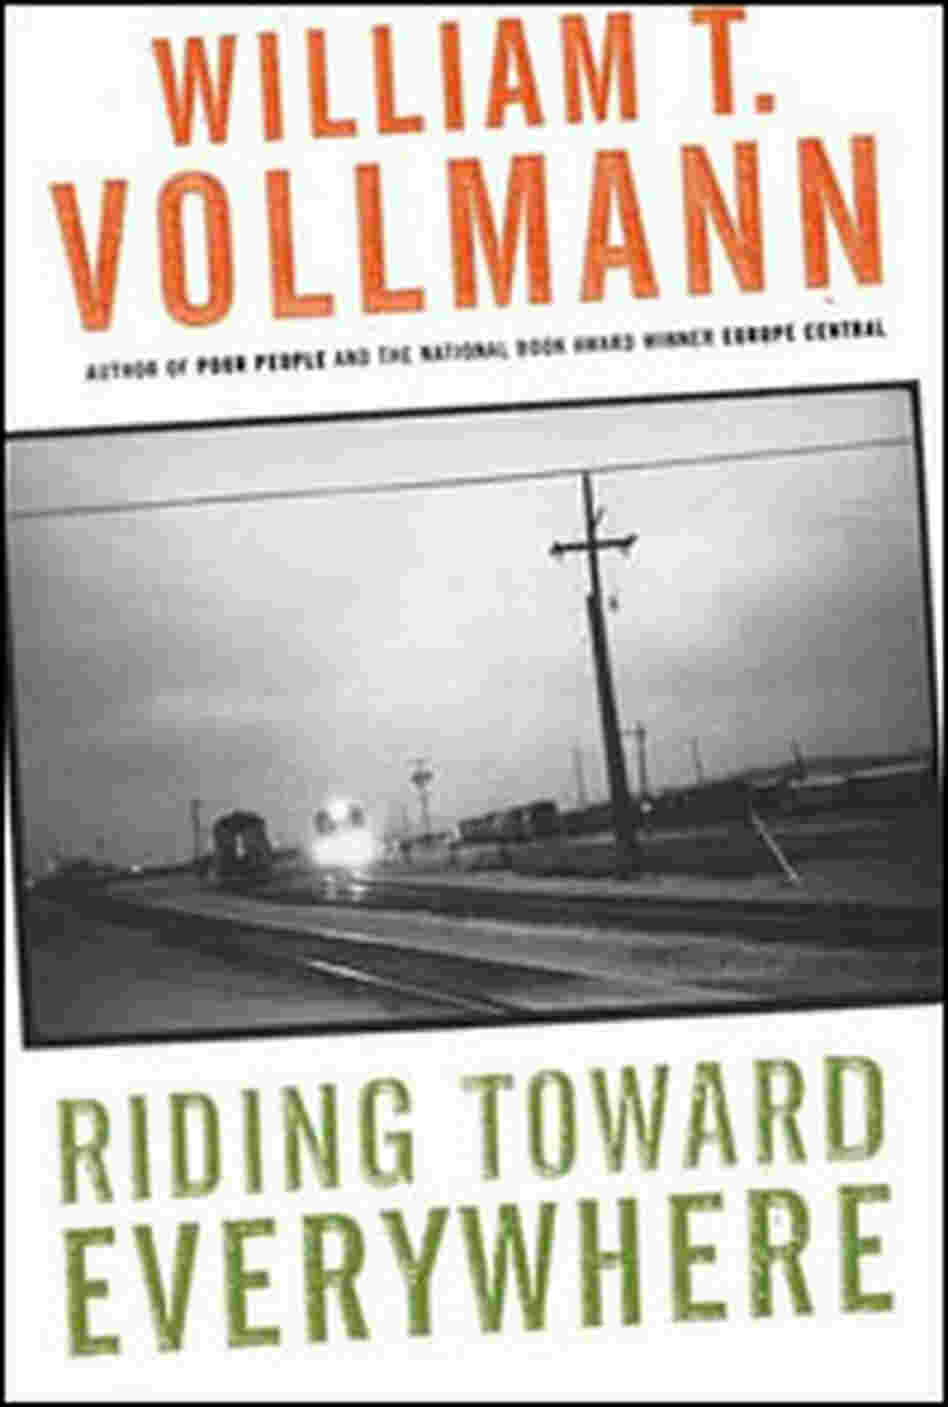 William Vollmann, Riding Towards Everywhere